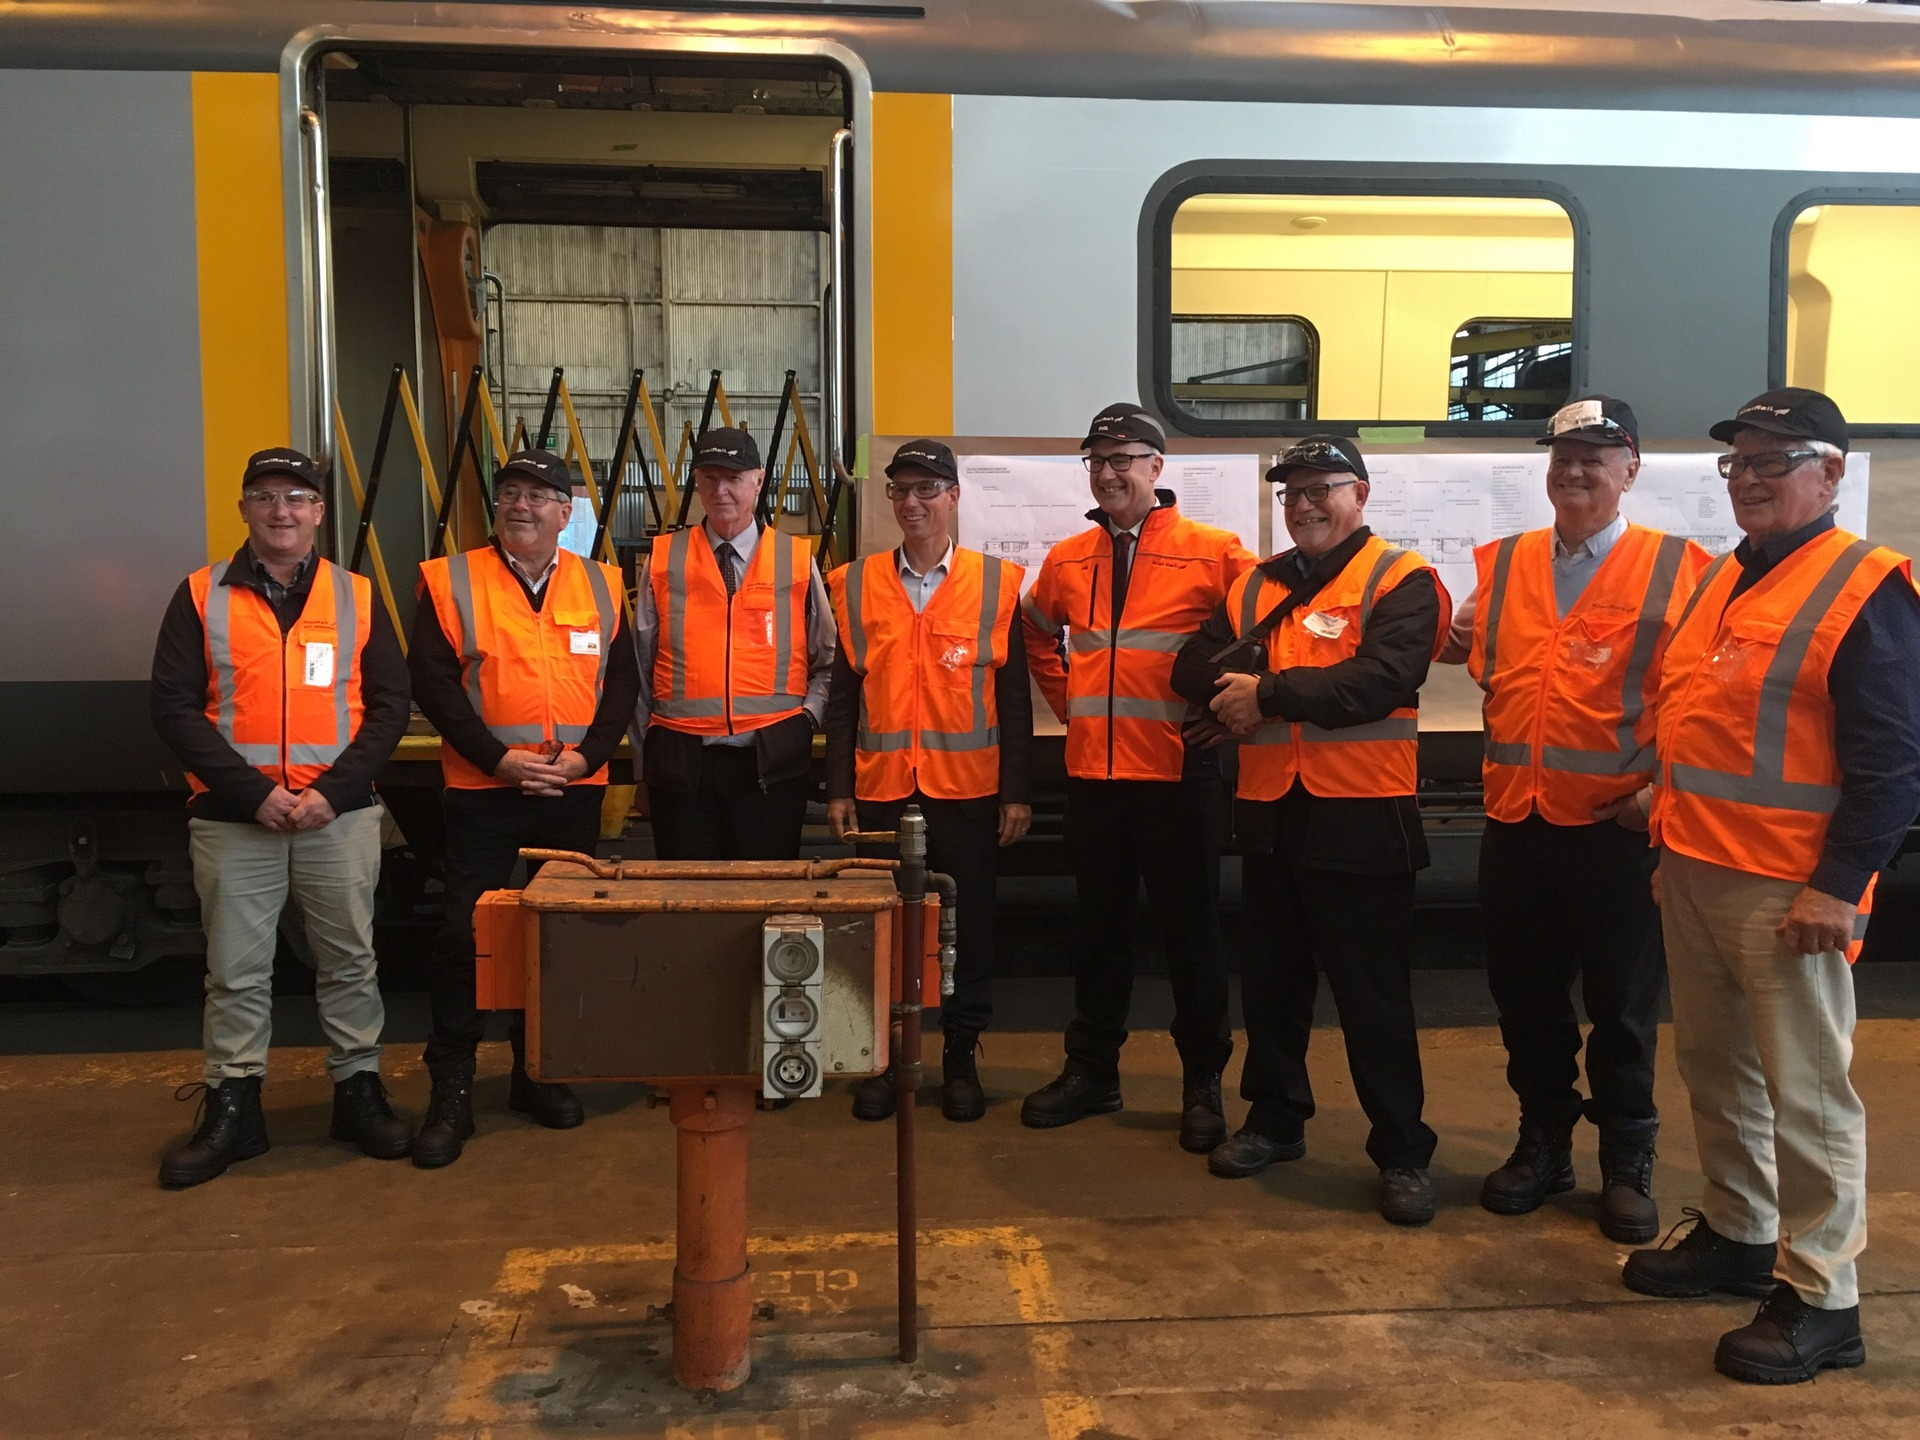 Hamilton to Auckland train service to give commuters a choice, says Transport Minister Phil Twyford